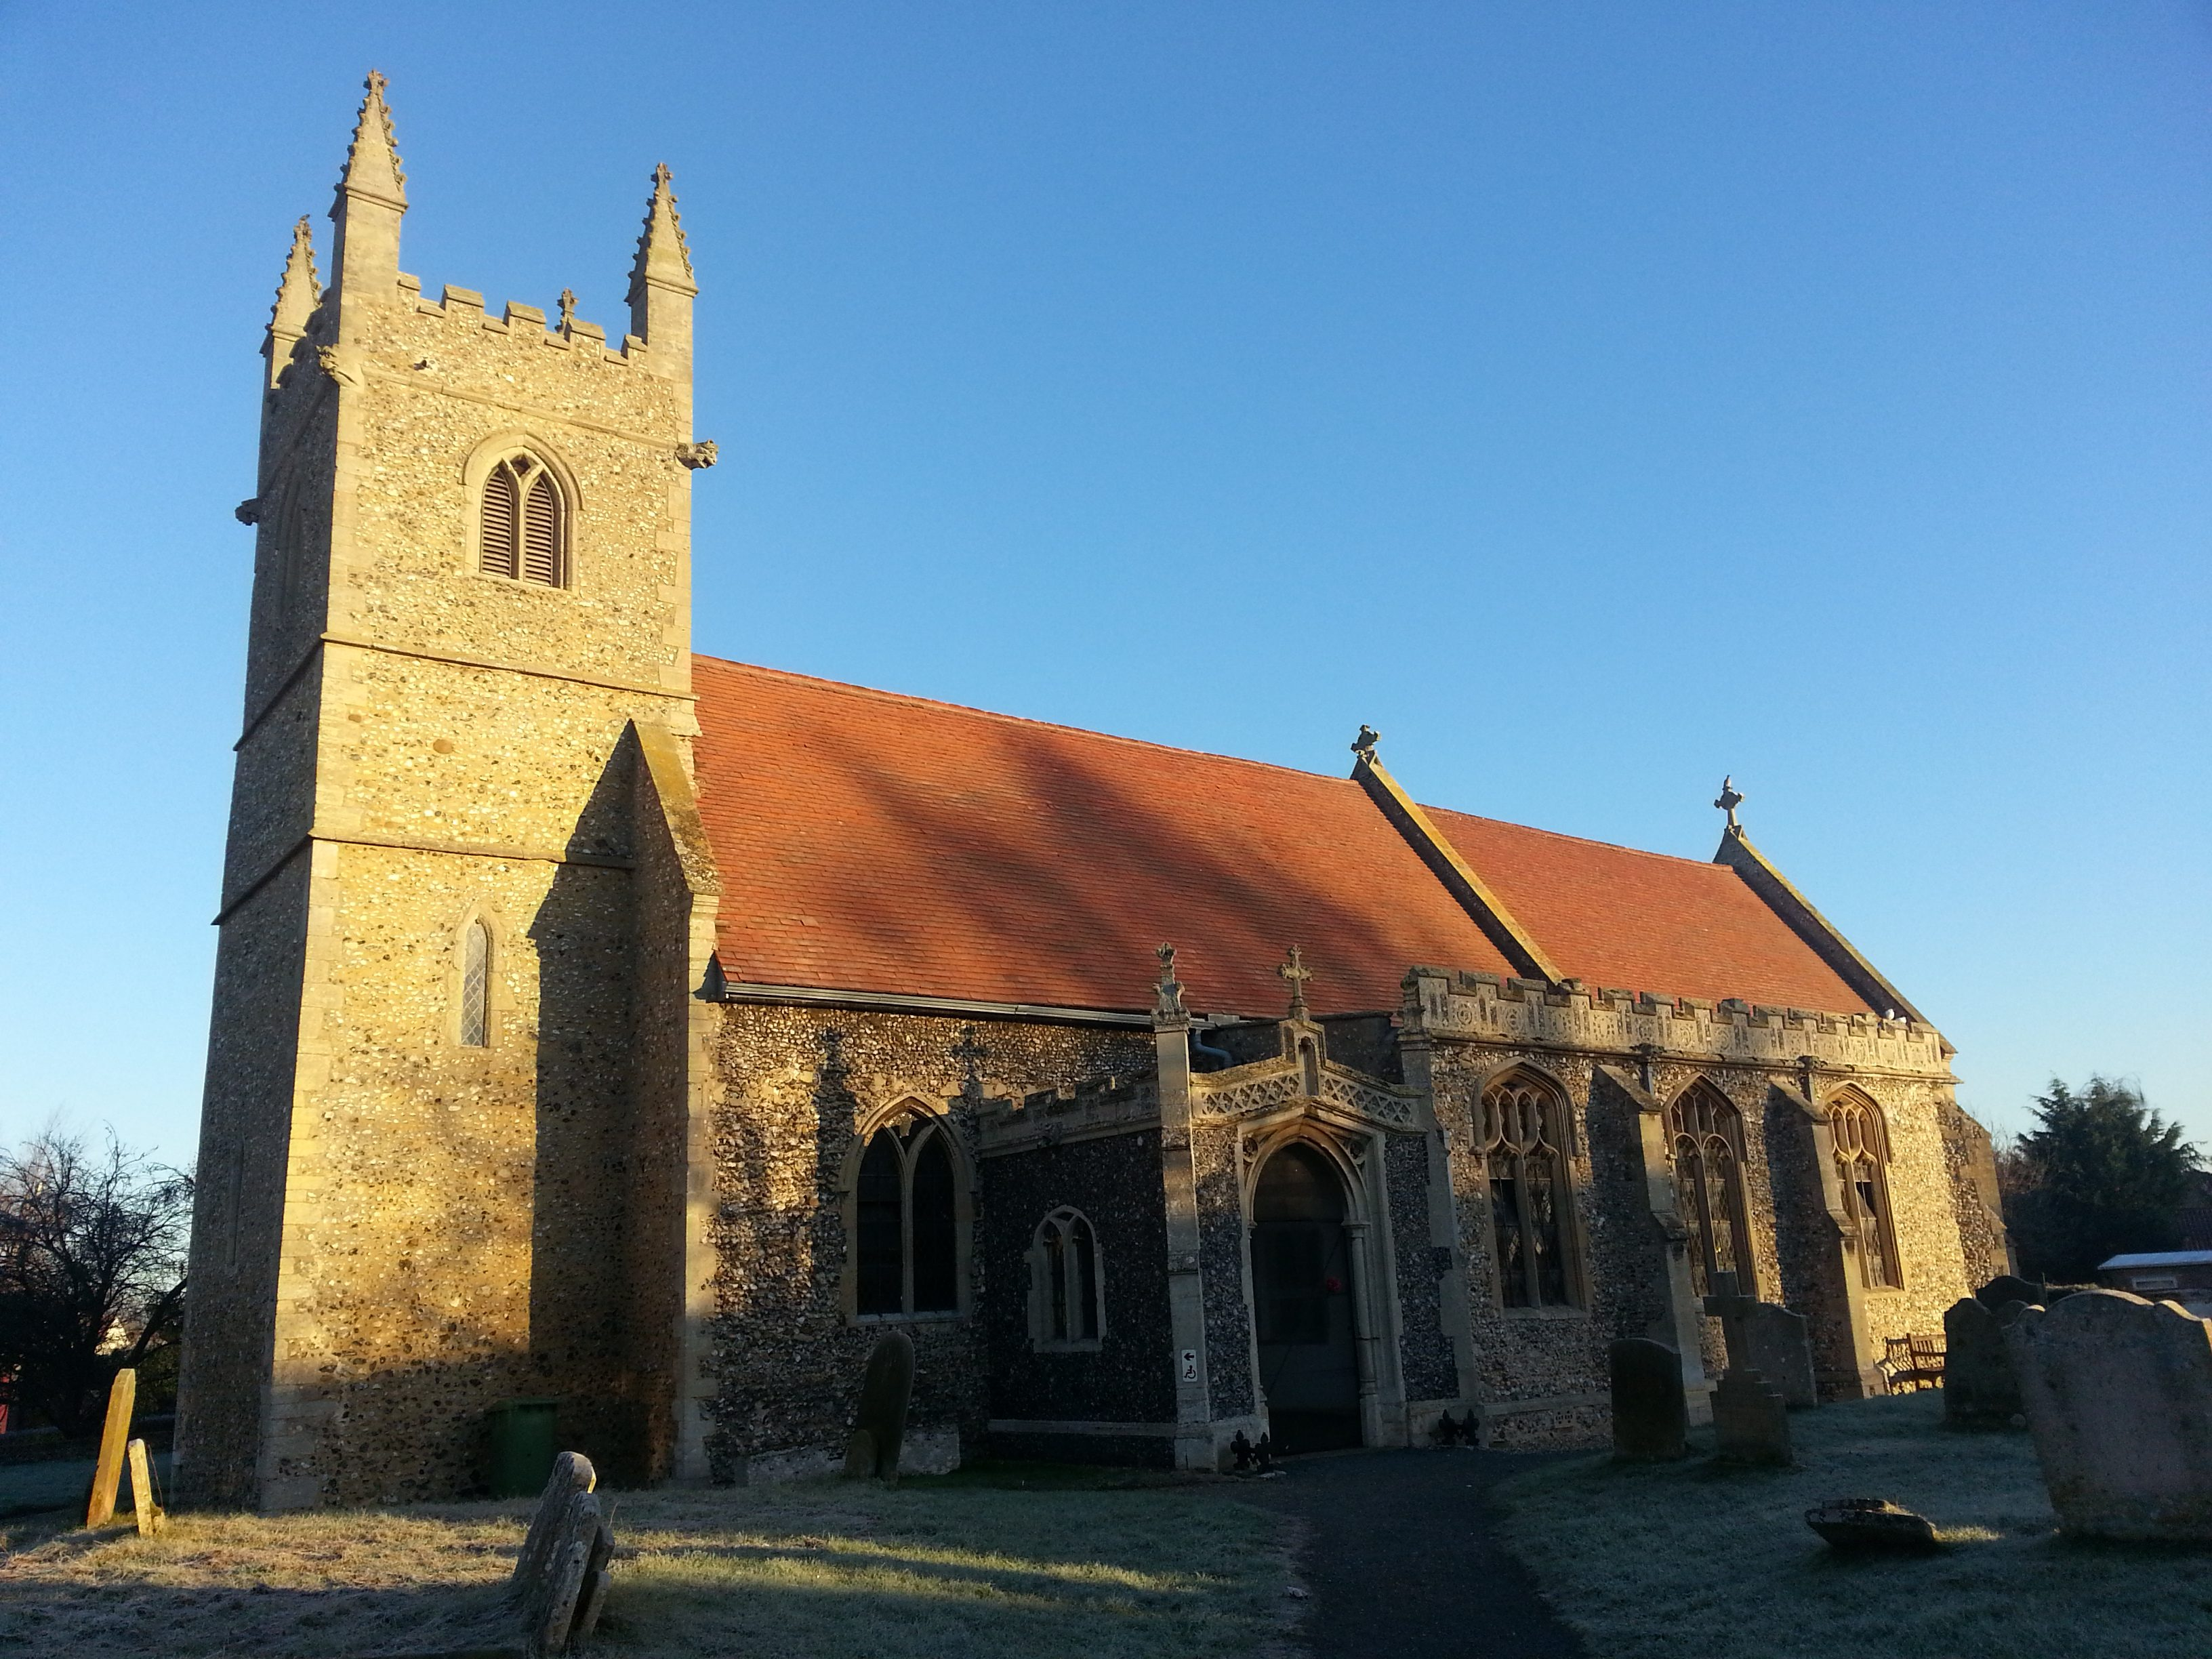 Finding Nunns in Fornham All Saints